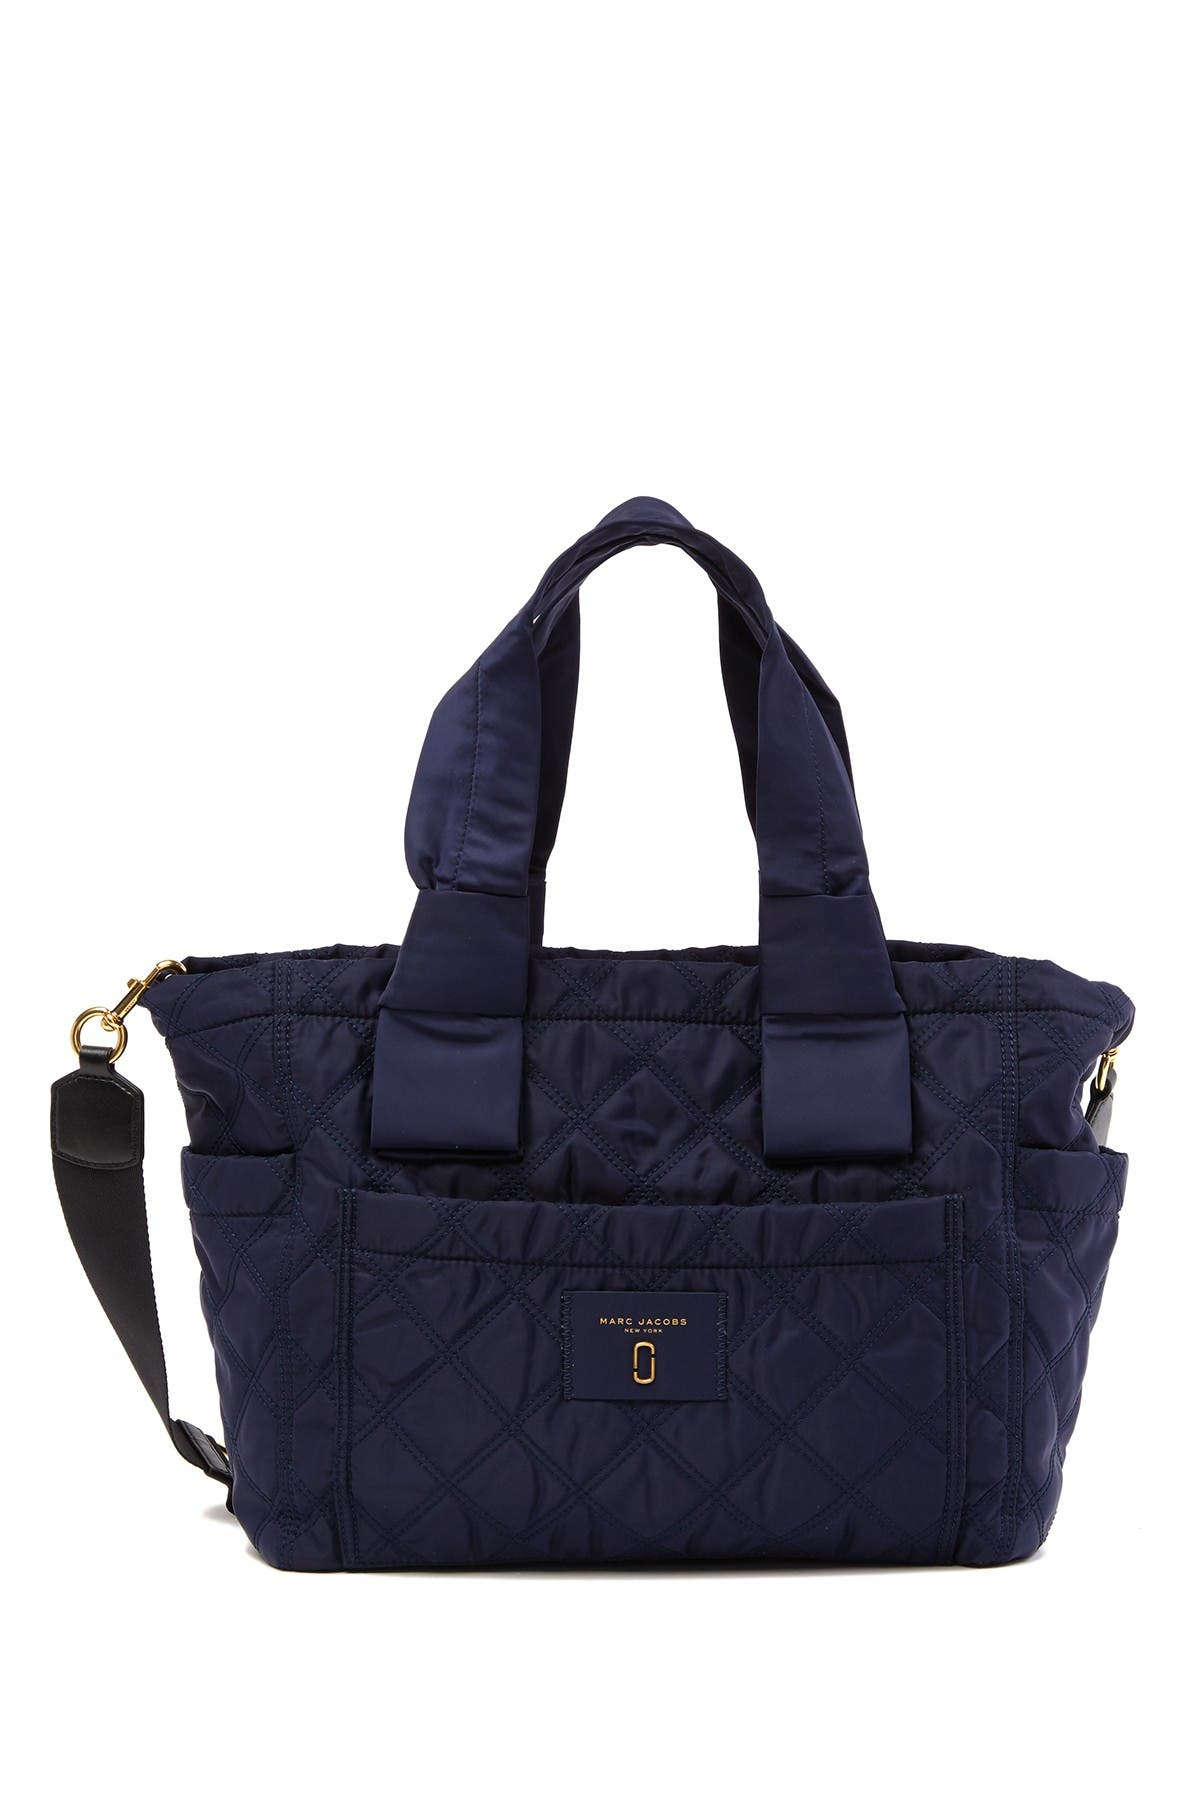 Image of Marc Jacobs Diamond Quilted Baby Bag